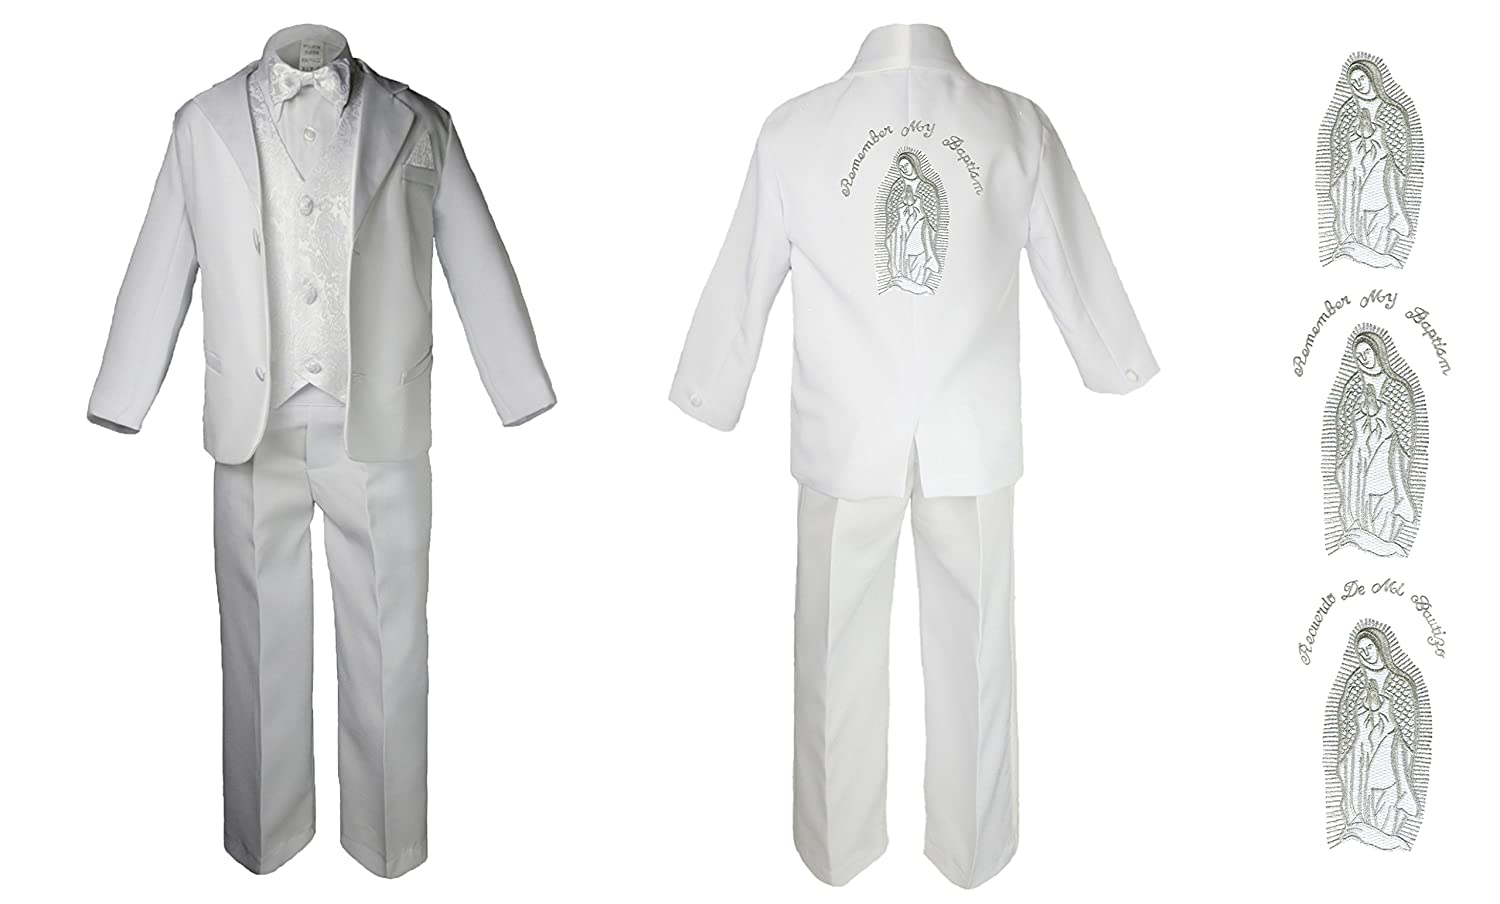 Baby Boy Christening Baptism Formal White Suit Silver Mary Maria on Back Sm-7